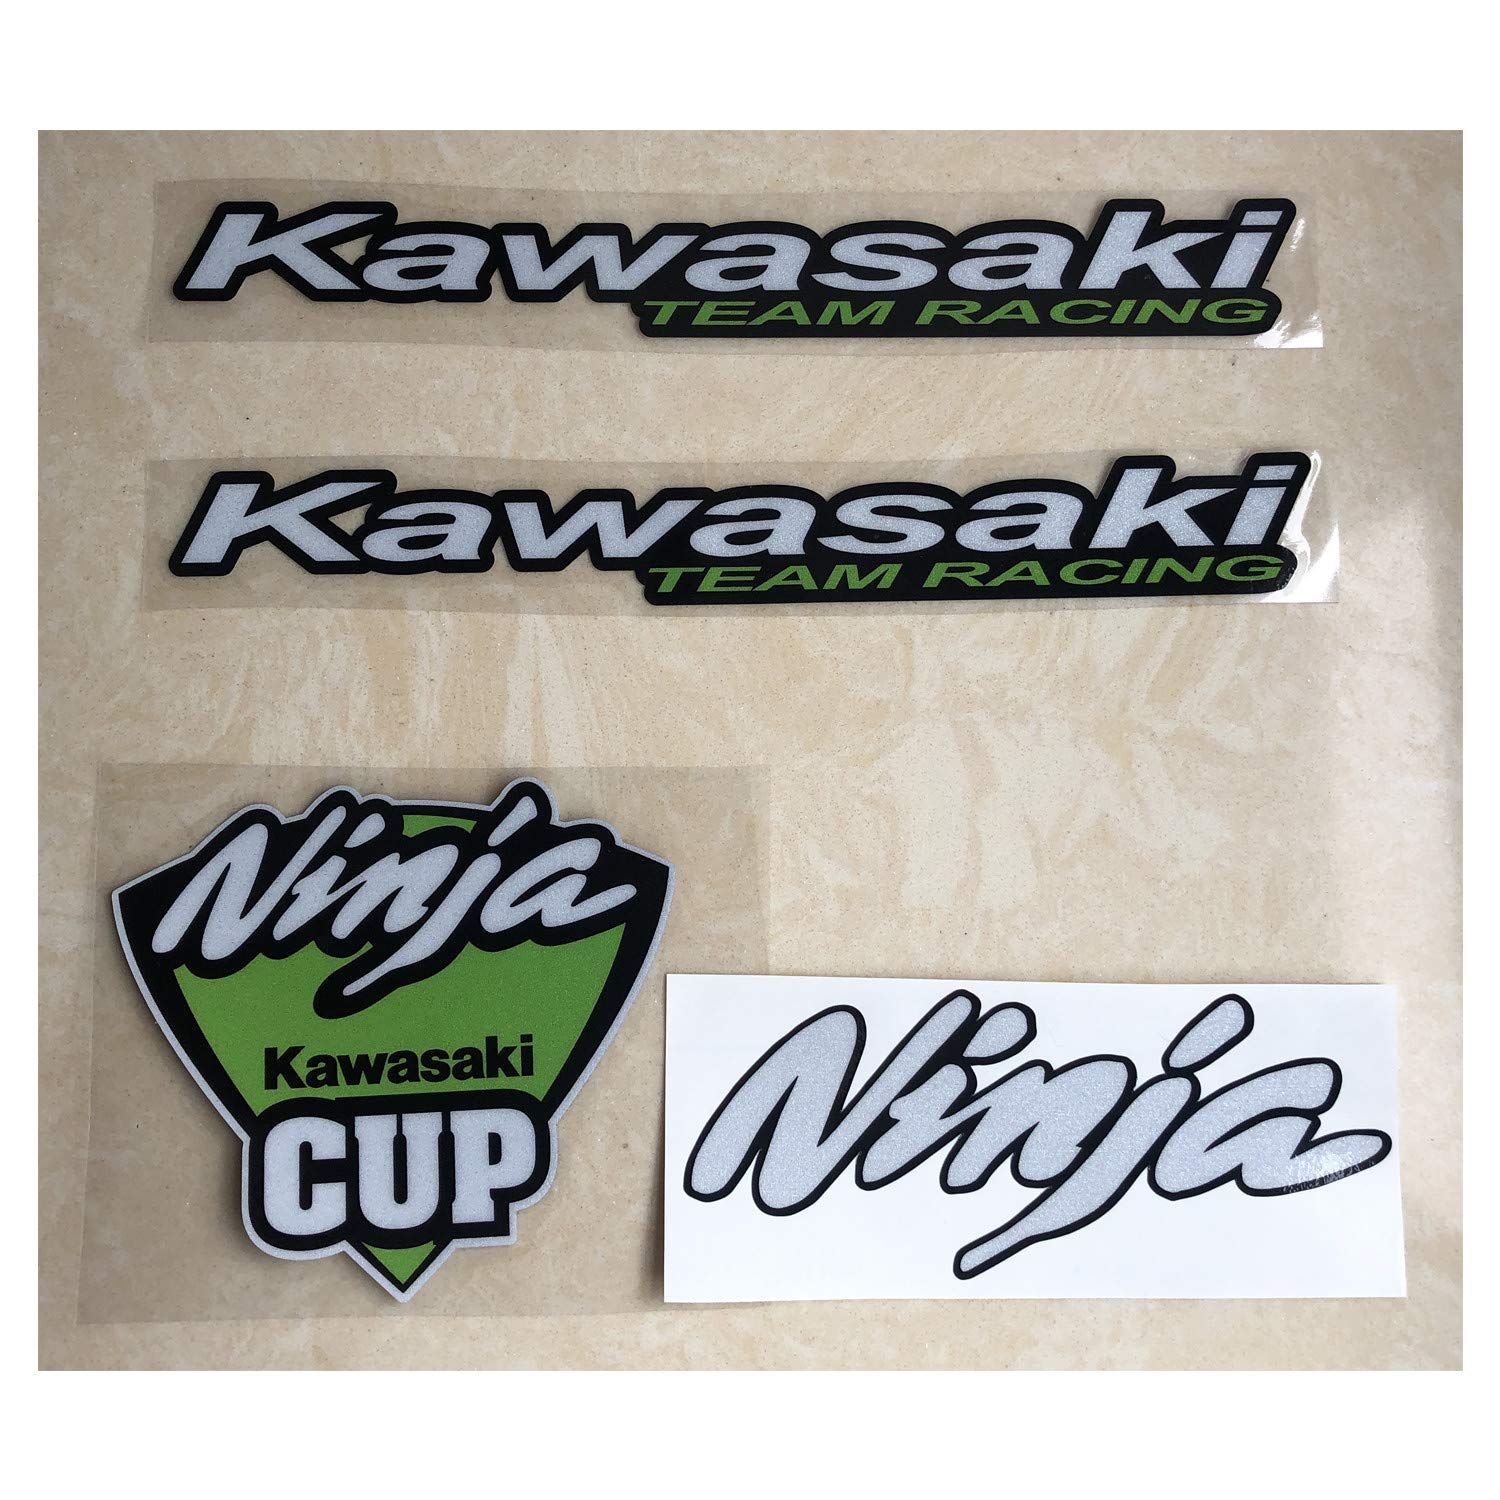 LLAP Stickers for Kawasaki Ninja Decals Vinyl Gas Tank Helmet Decals for Ninja ZX14 ZX12 ZX10 ZX9 ZX7 ZX6 R 250R 300(4packs)